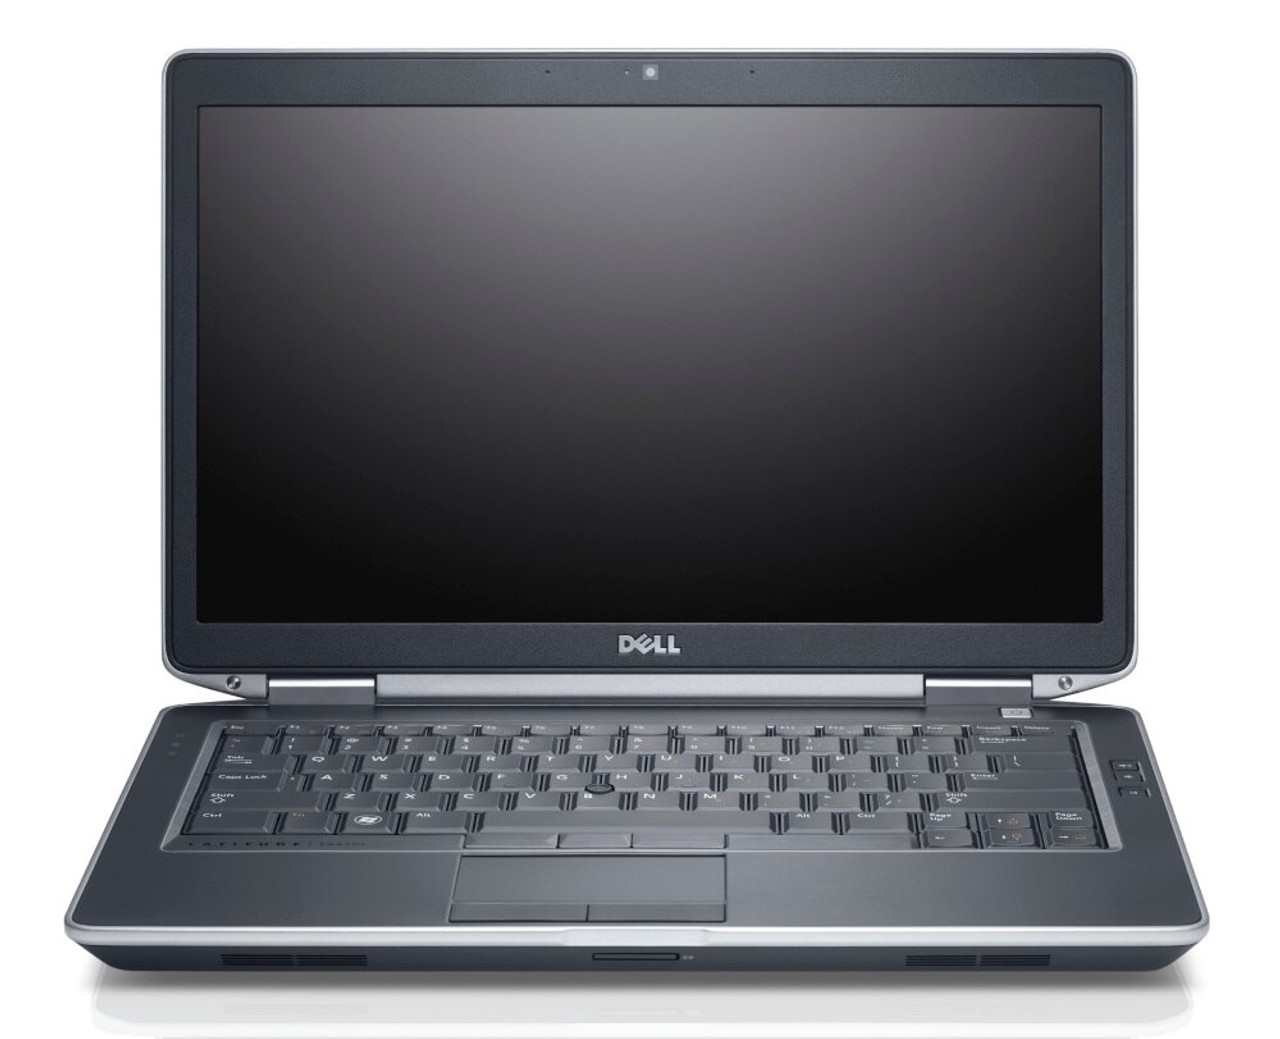 Dell Latitude E6430s Laptop Core i5 2.6GHz, 4GB Ram, 320GB HDD, DVD-RW, Windows 10 Pro 64 Notebook